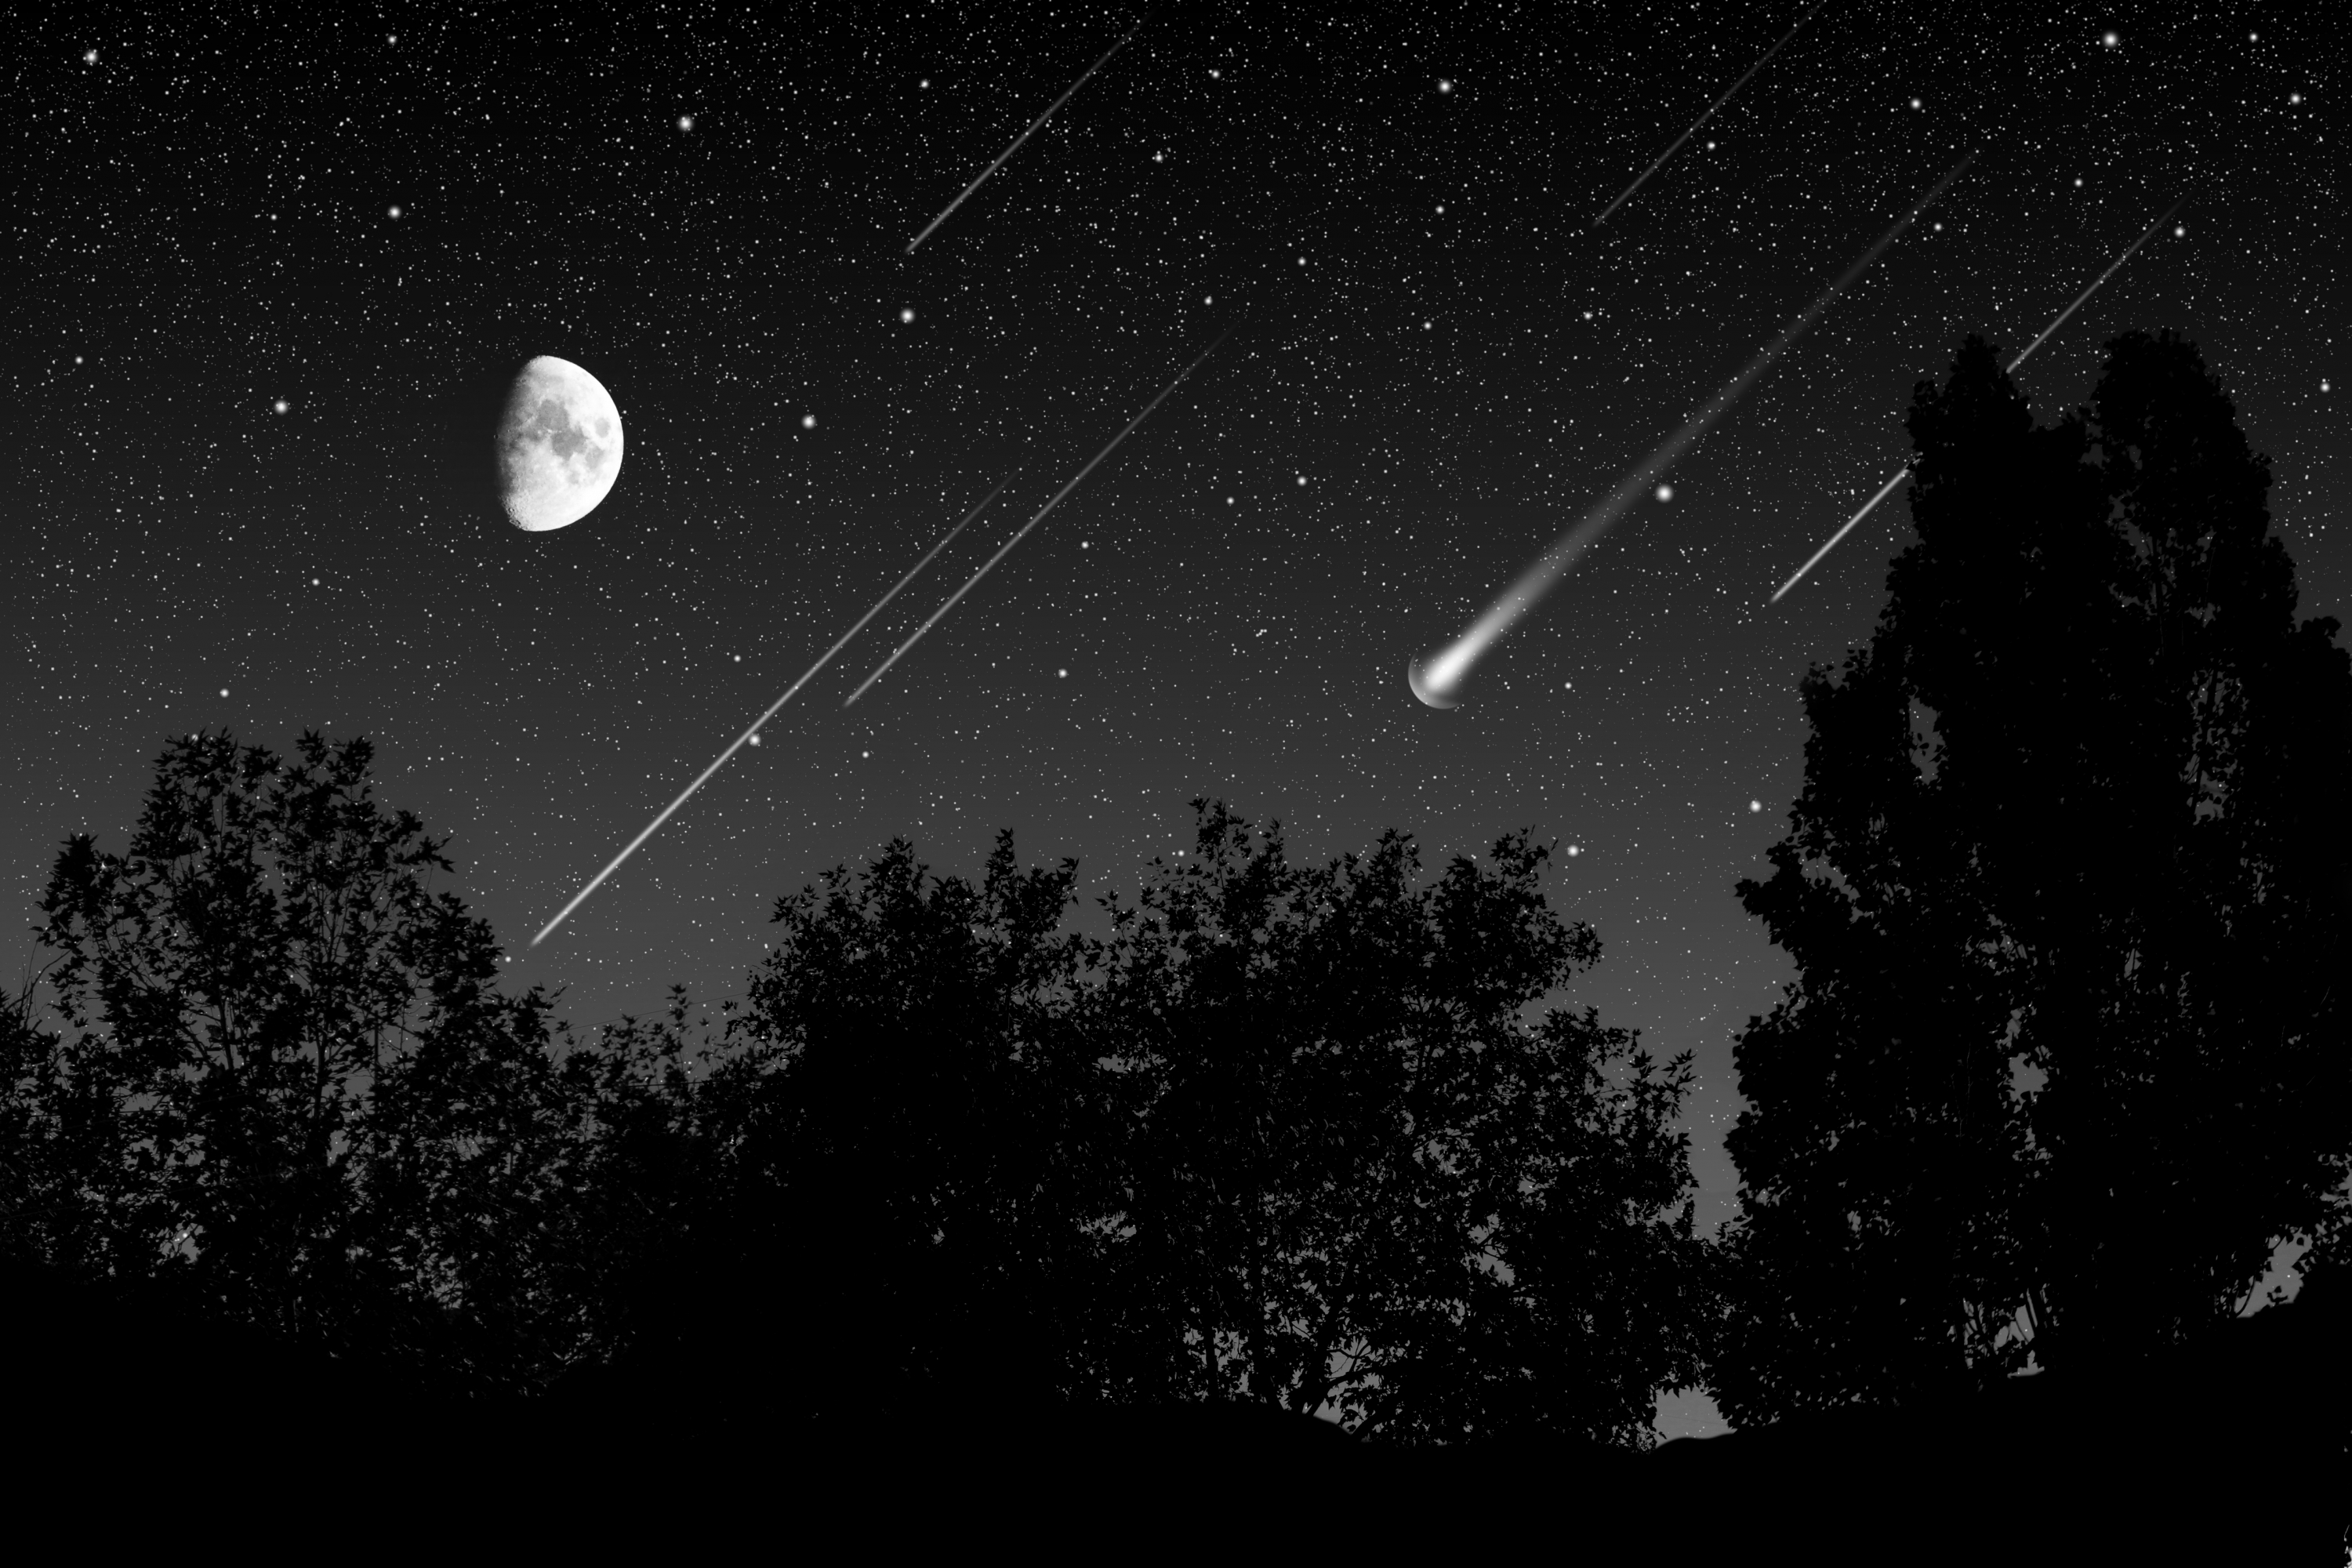 night sky with meteor shower and moon